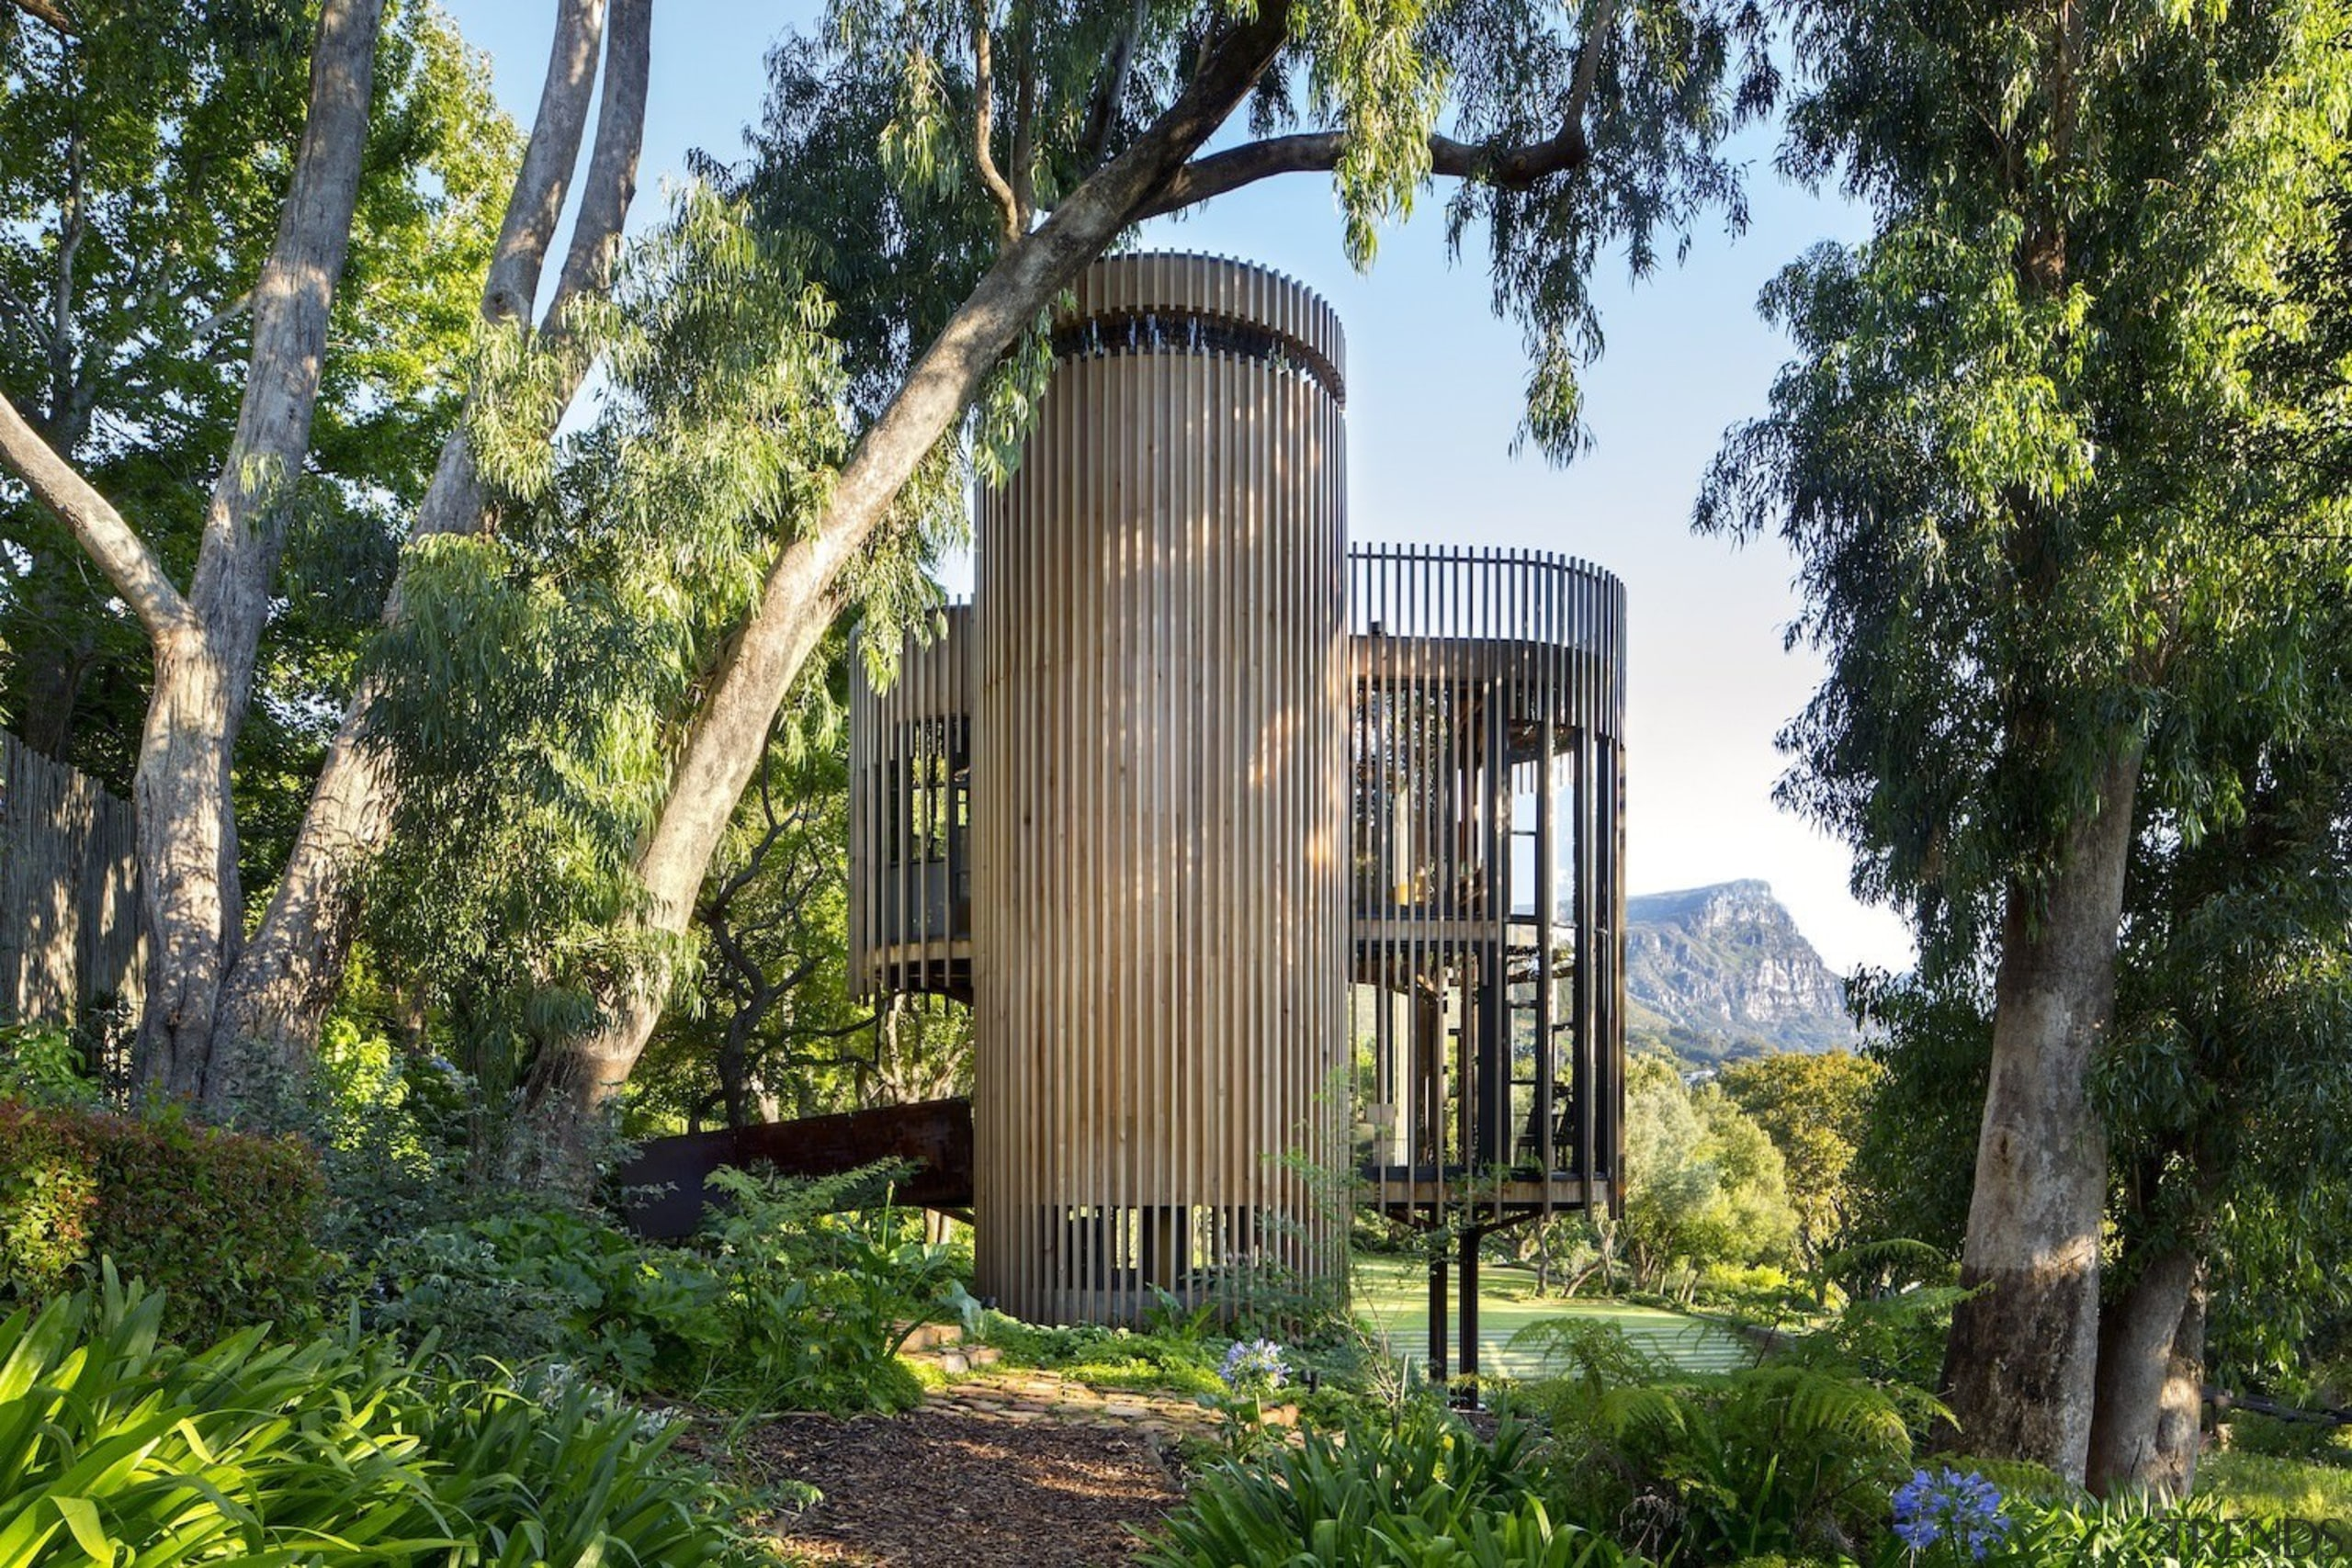 Architect: Malan VorsterPhotography by Adam Letch, Micky estate, house, outdoor structure, property, real estate, tree, brown